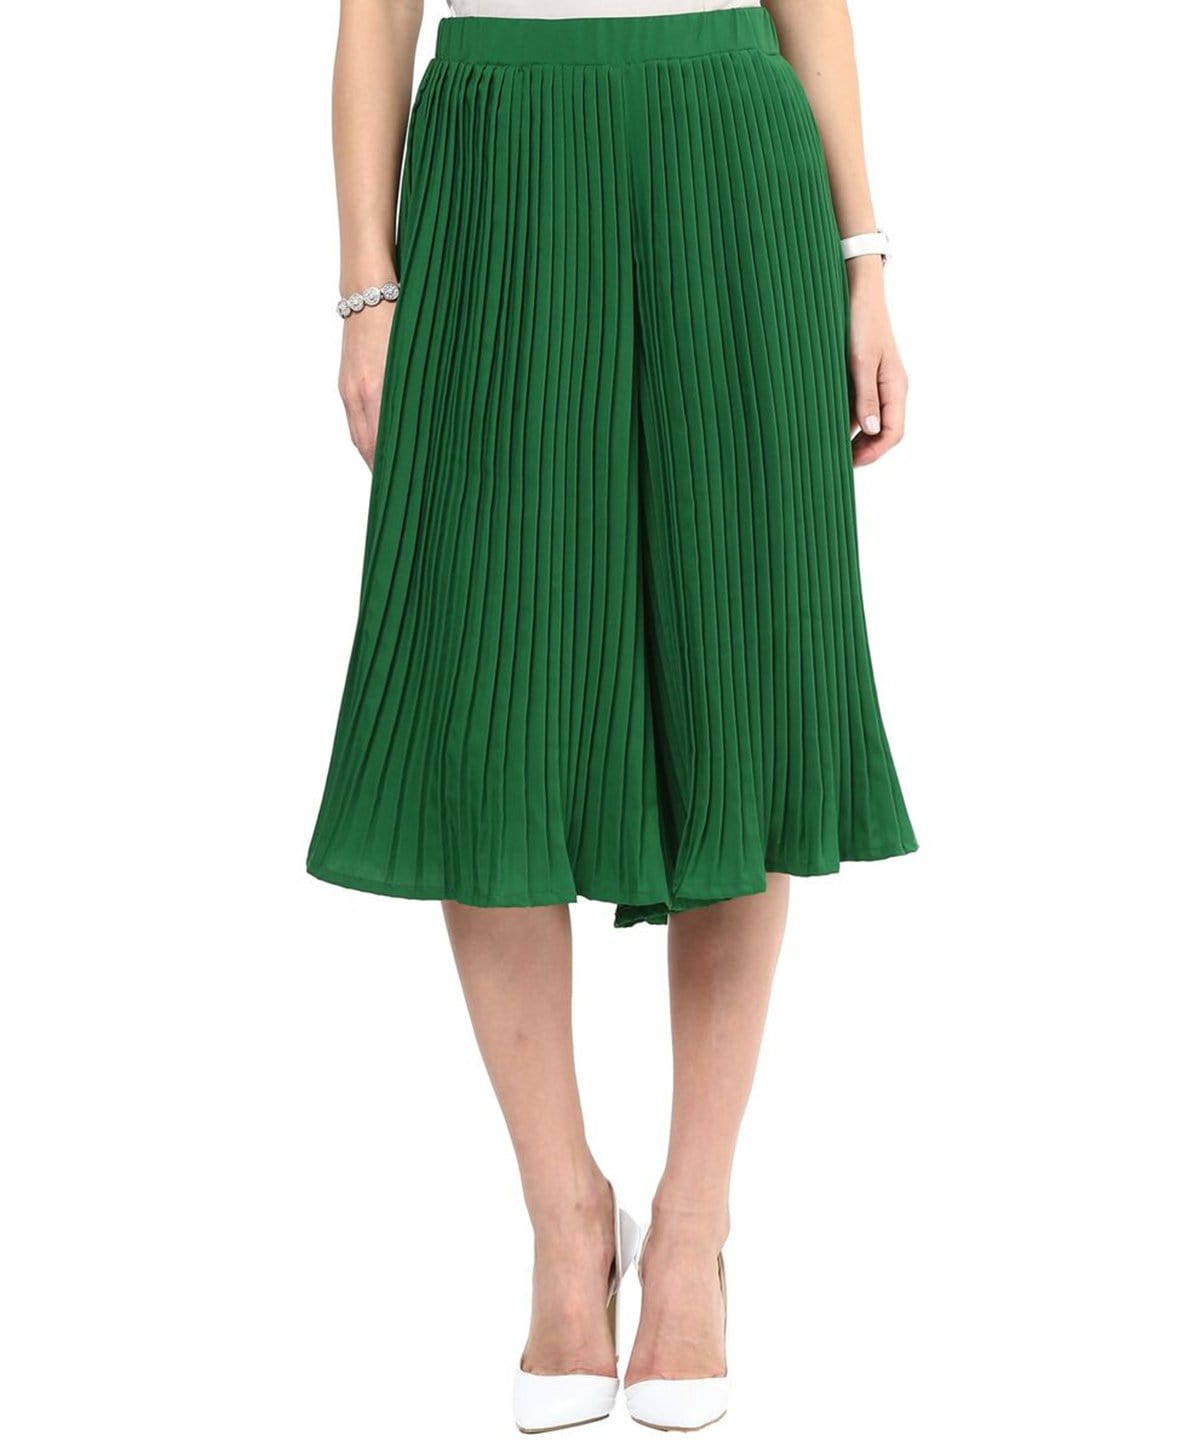 Uptownie Dark Green Pleated Culottes 1 clearance sale